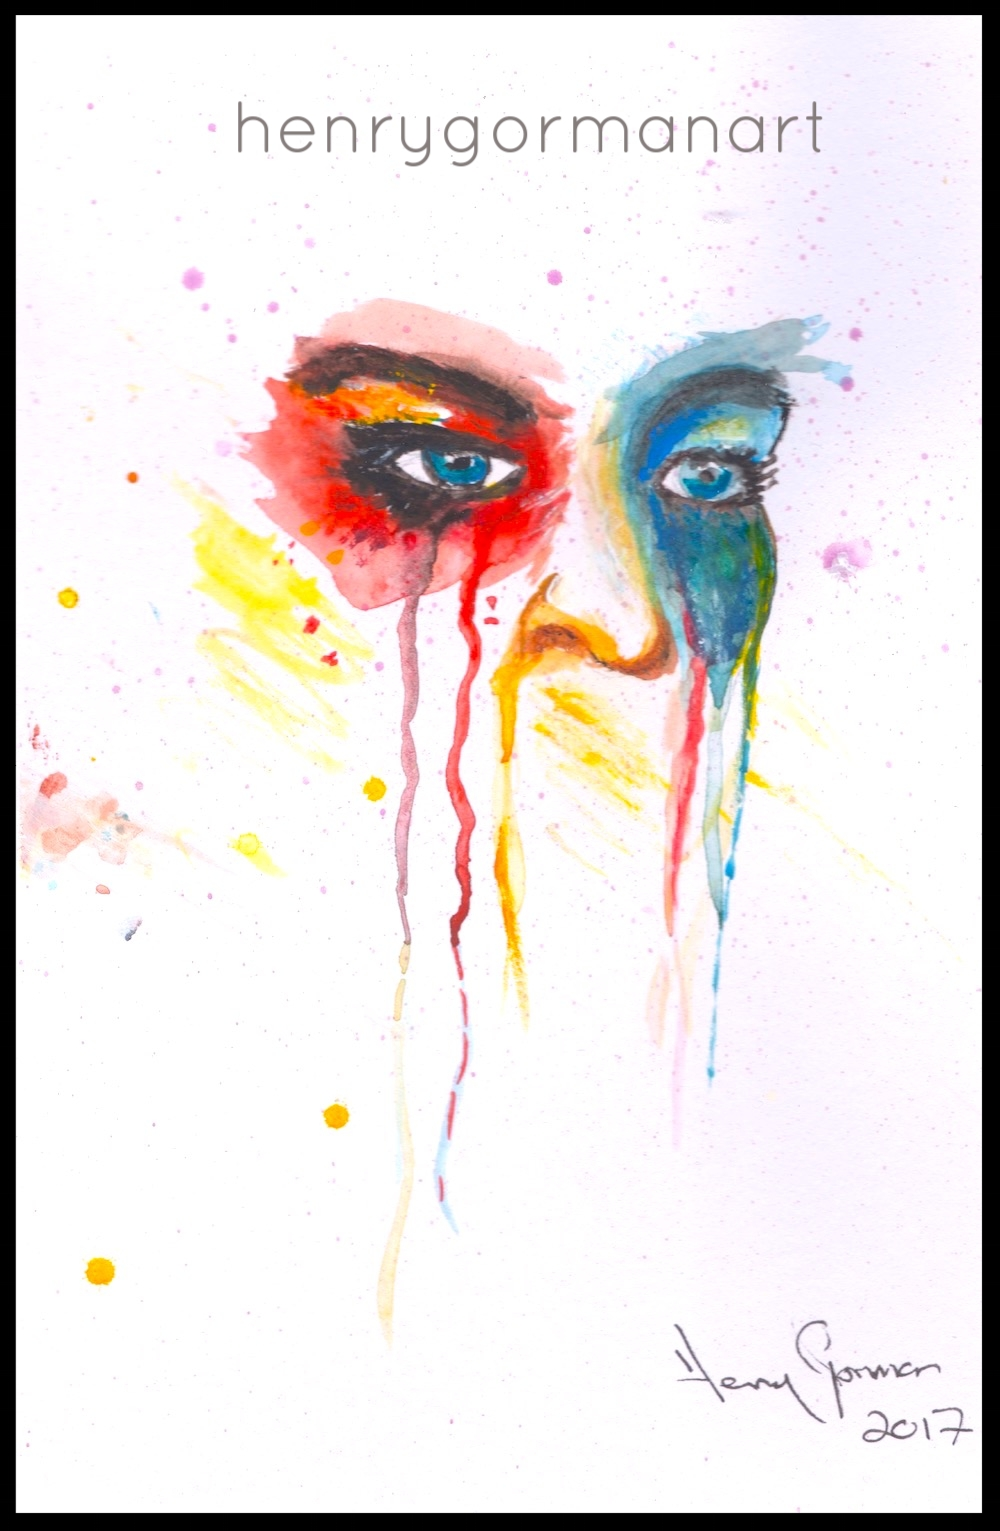 'Abstract tears'